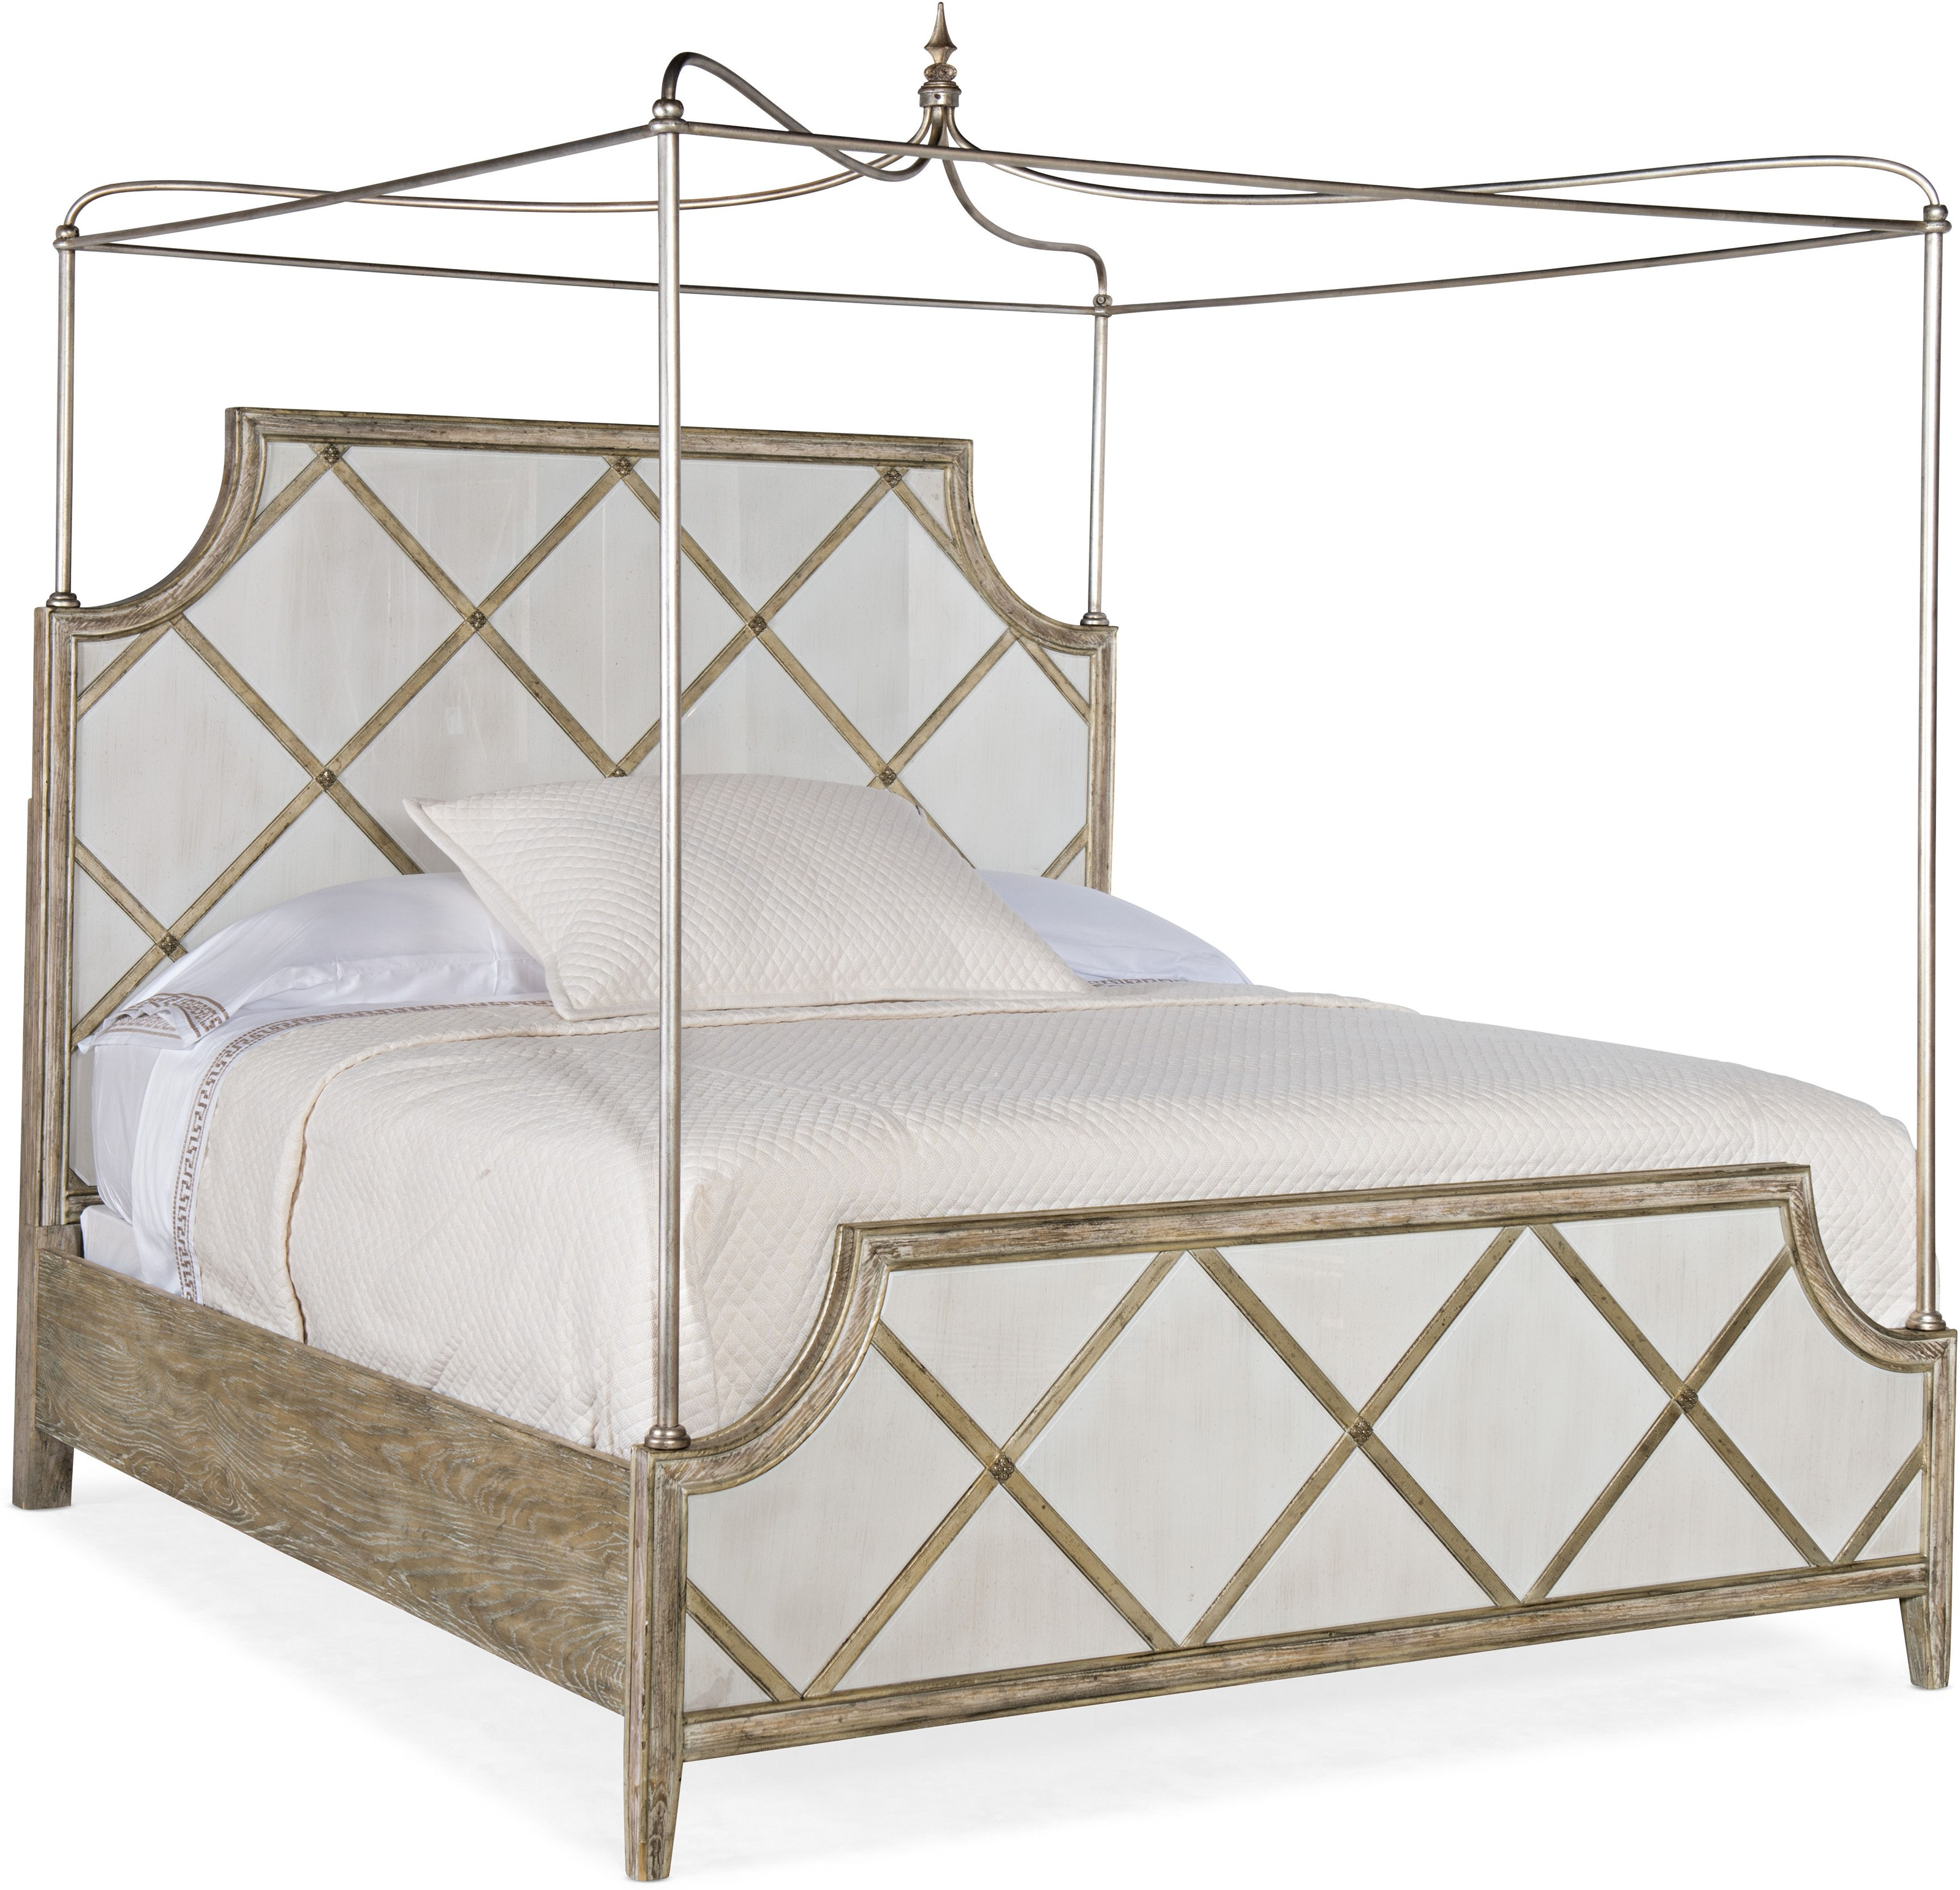 Hooker Furniture Sanctuary 5875 90365 95 Diamont King Canopy Bed Baer S Furniture Canopy Beds